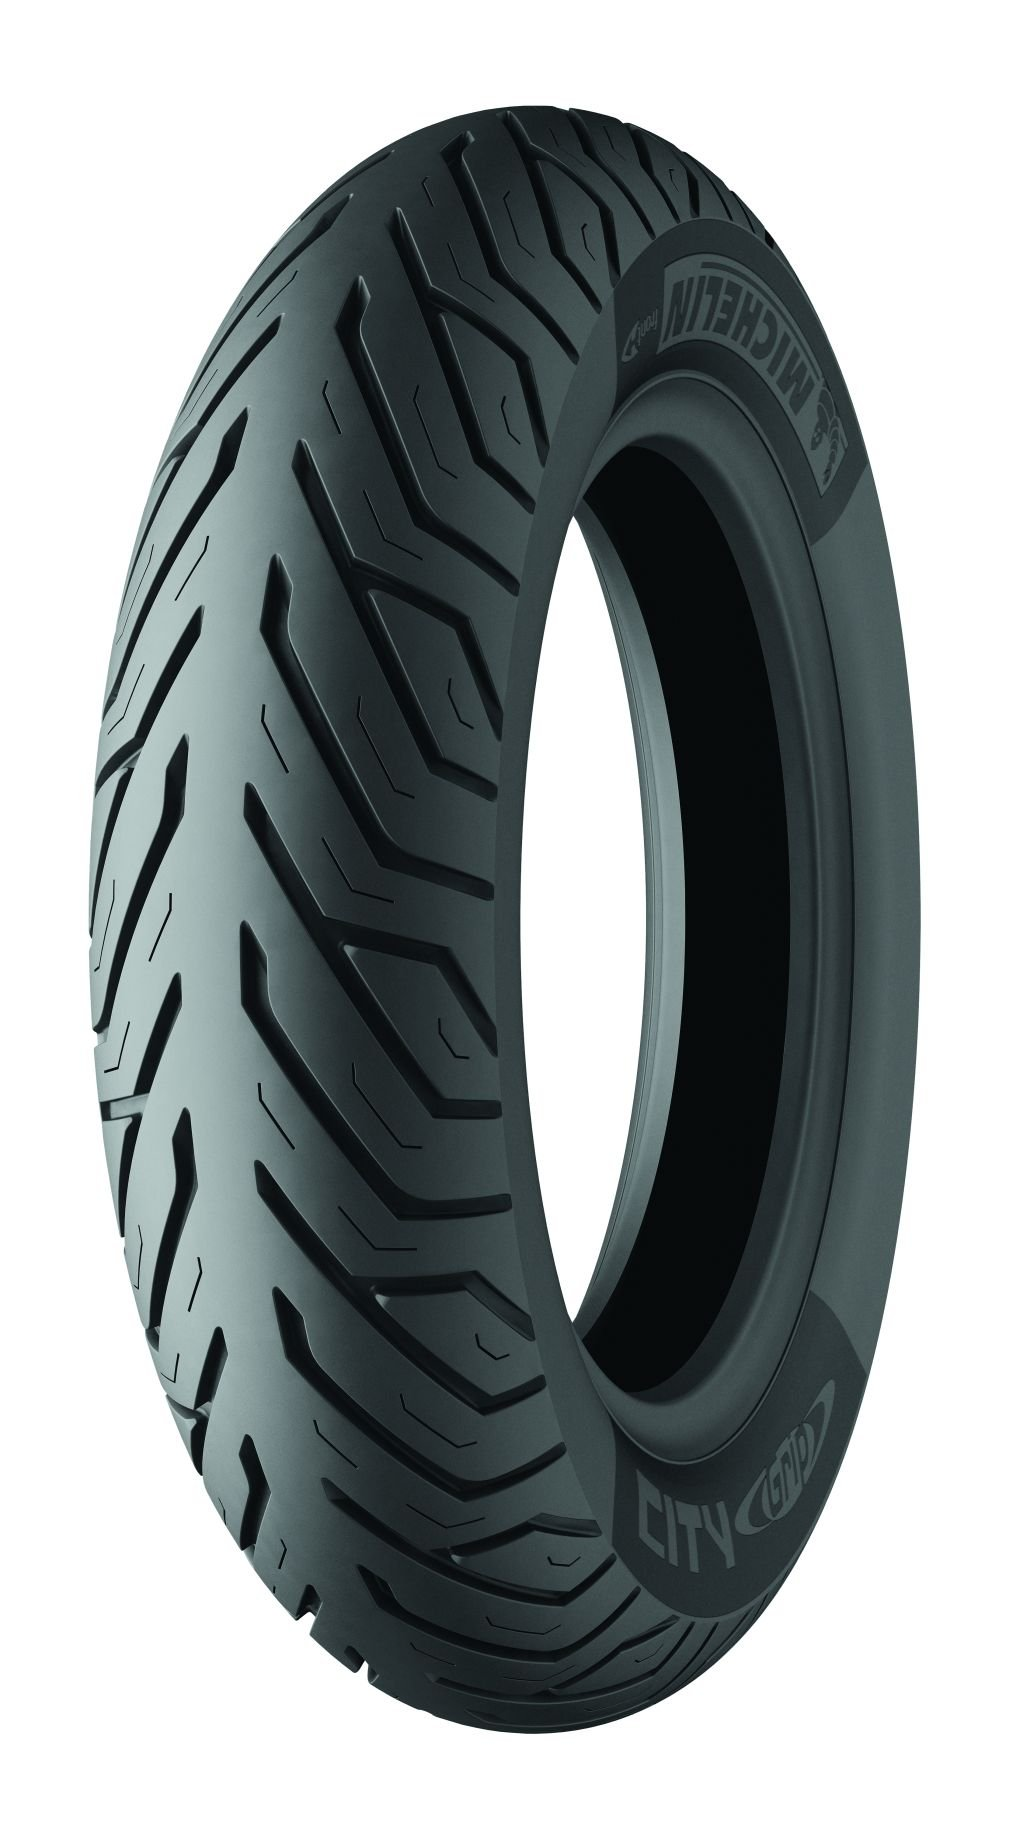 Michelin City Grip Premium Scooter Tire Rear 130/70-12 by Michelin